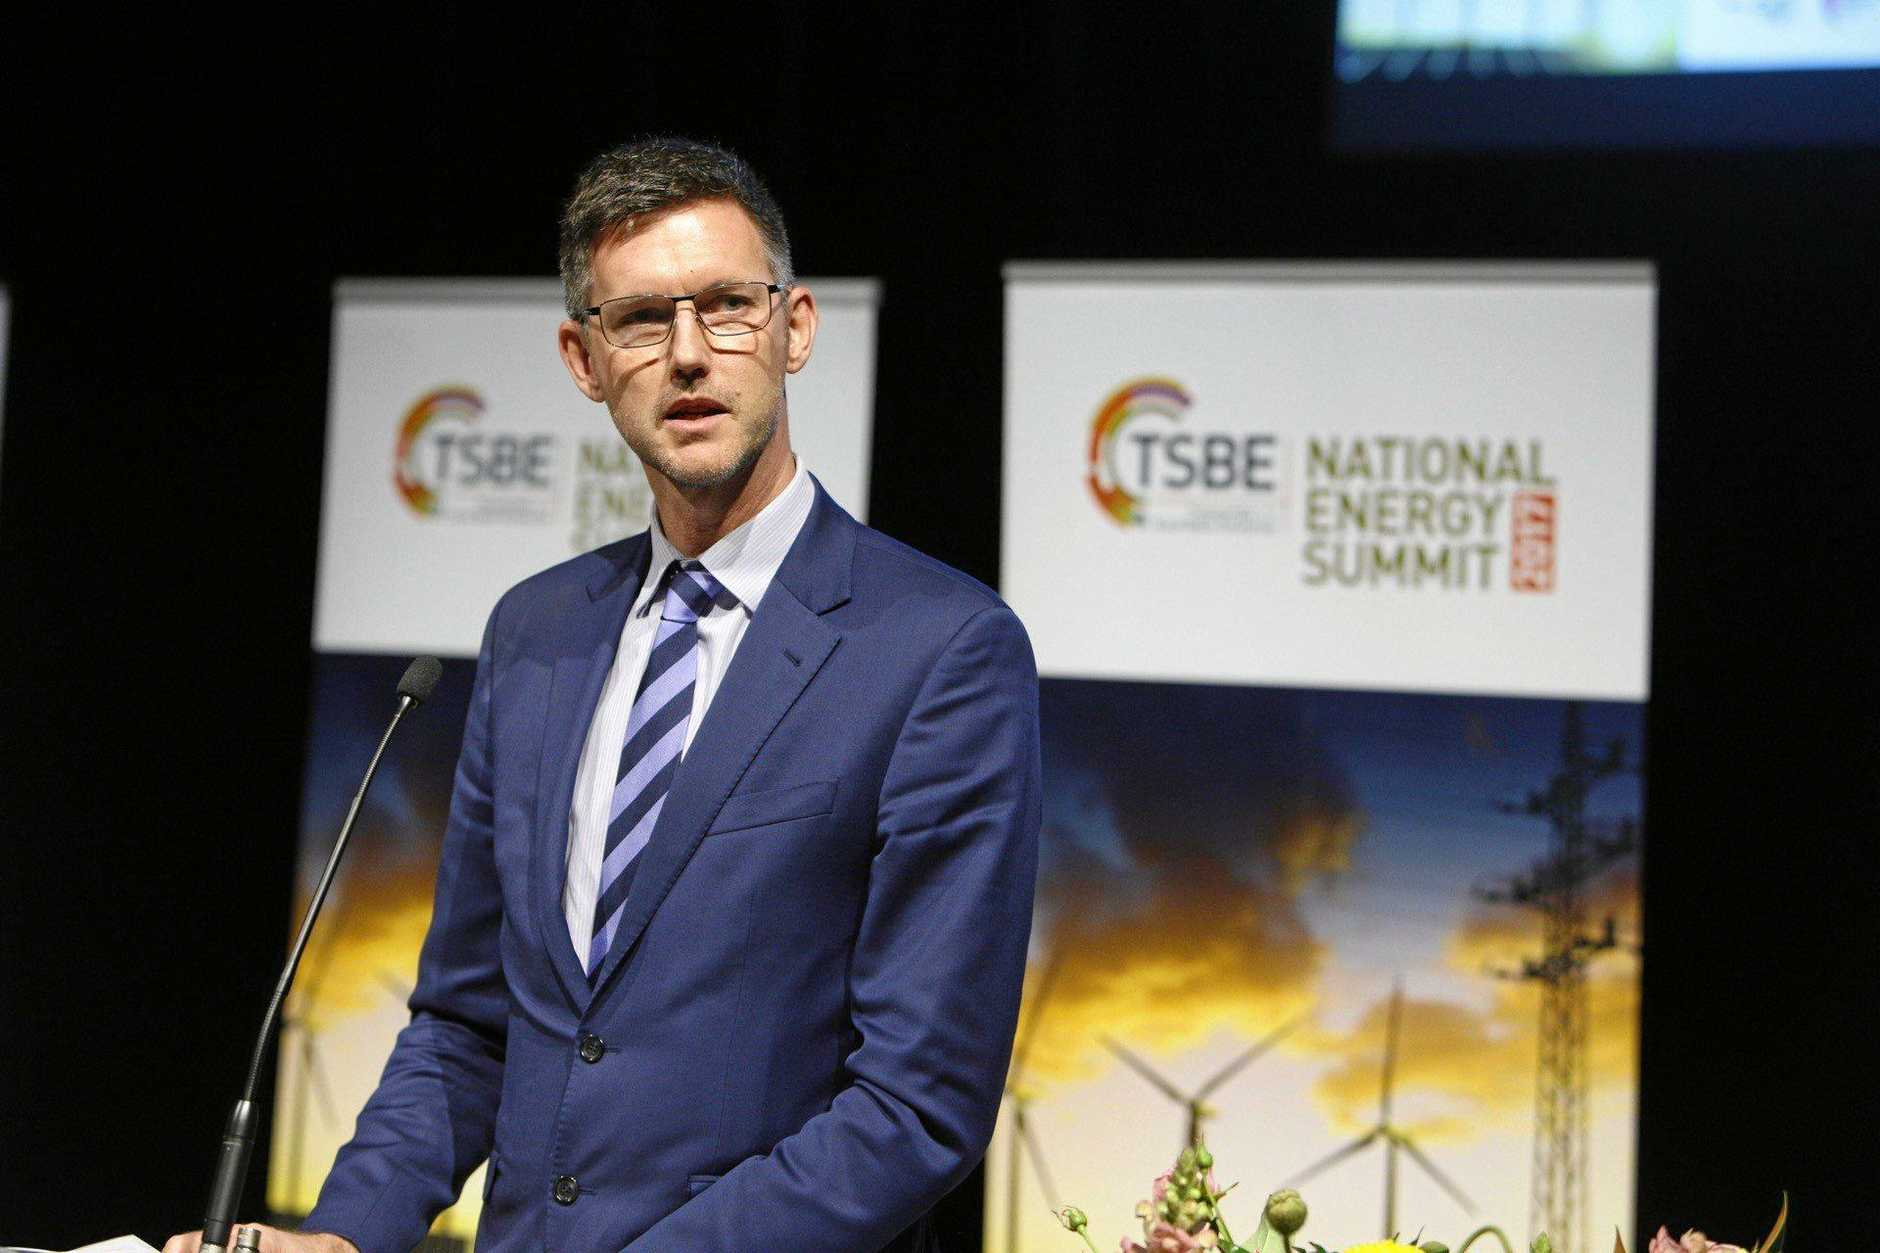 SOLAR SURGE: Minister for Energy, Biofuels and Water Supply Mark Bailey says the Queensland Government was leading the way adopting the cheapest energy infrastructure.